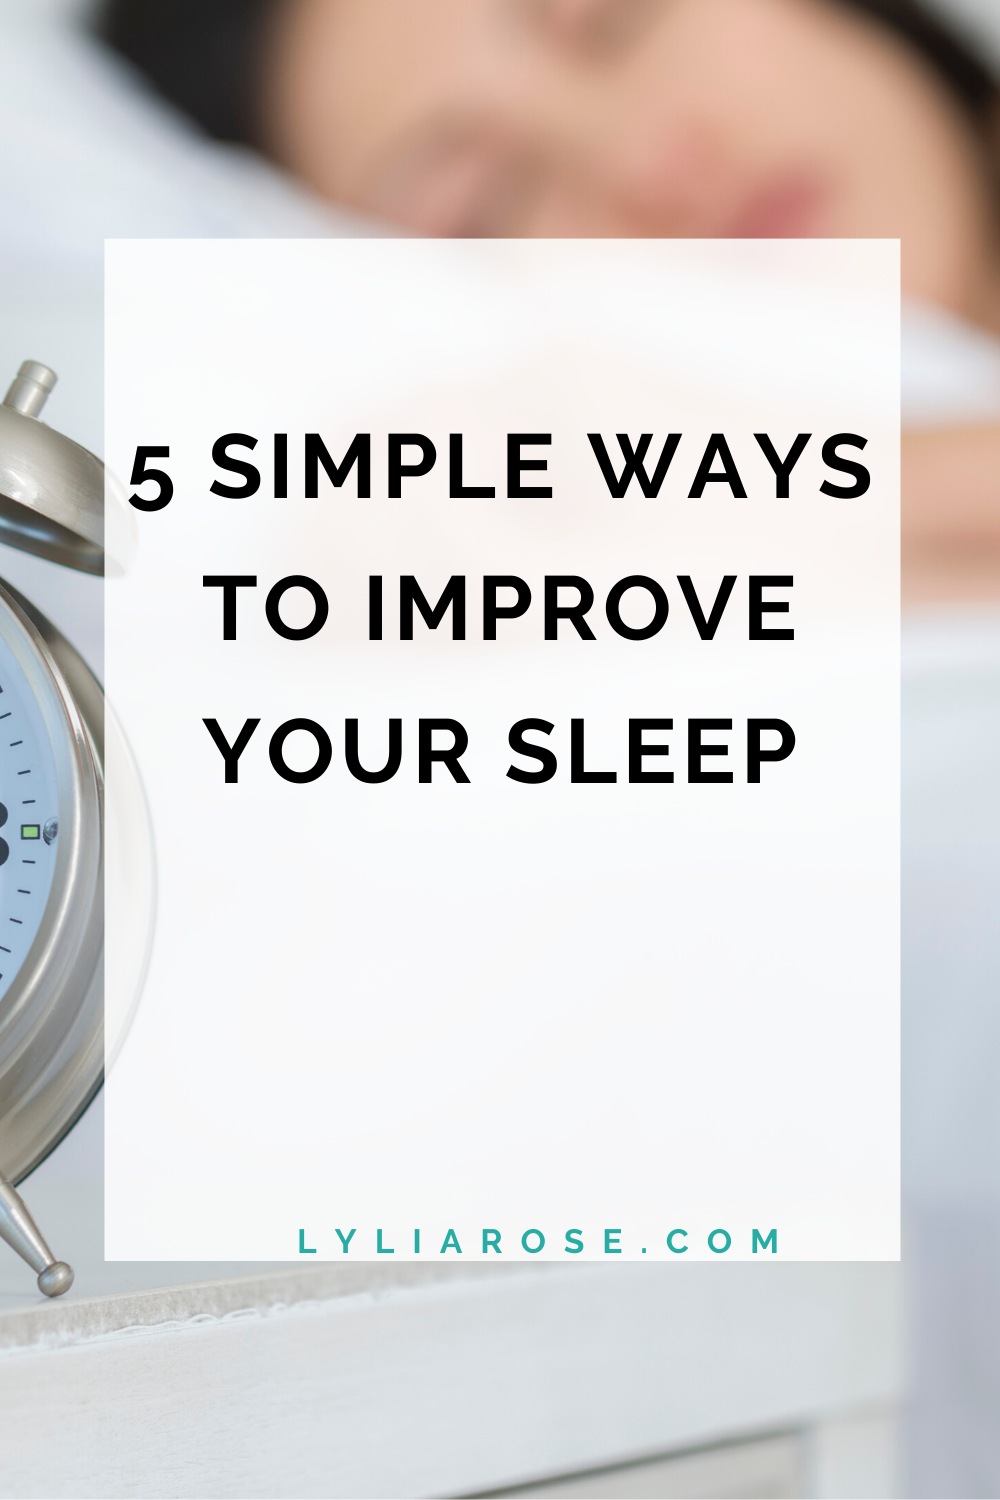 5 simple ways to improve your sleep